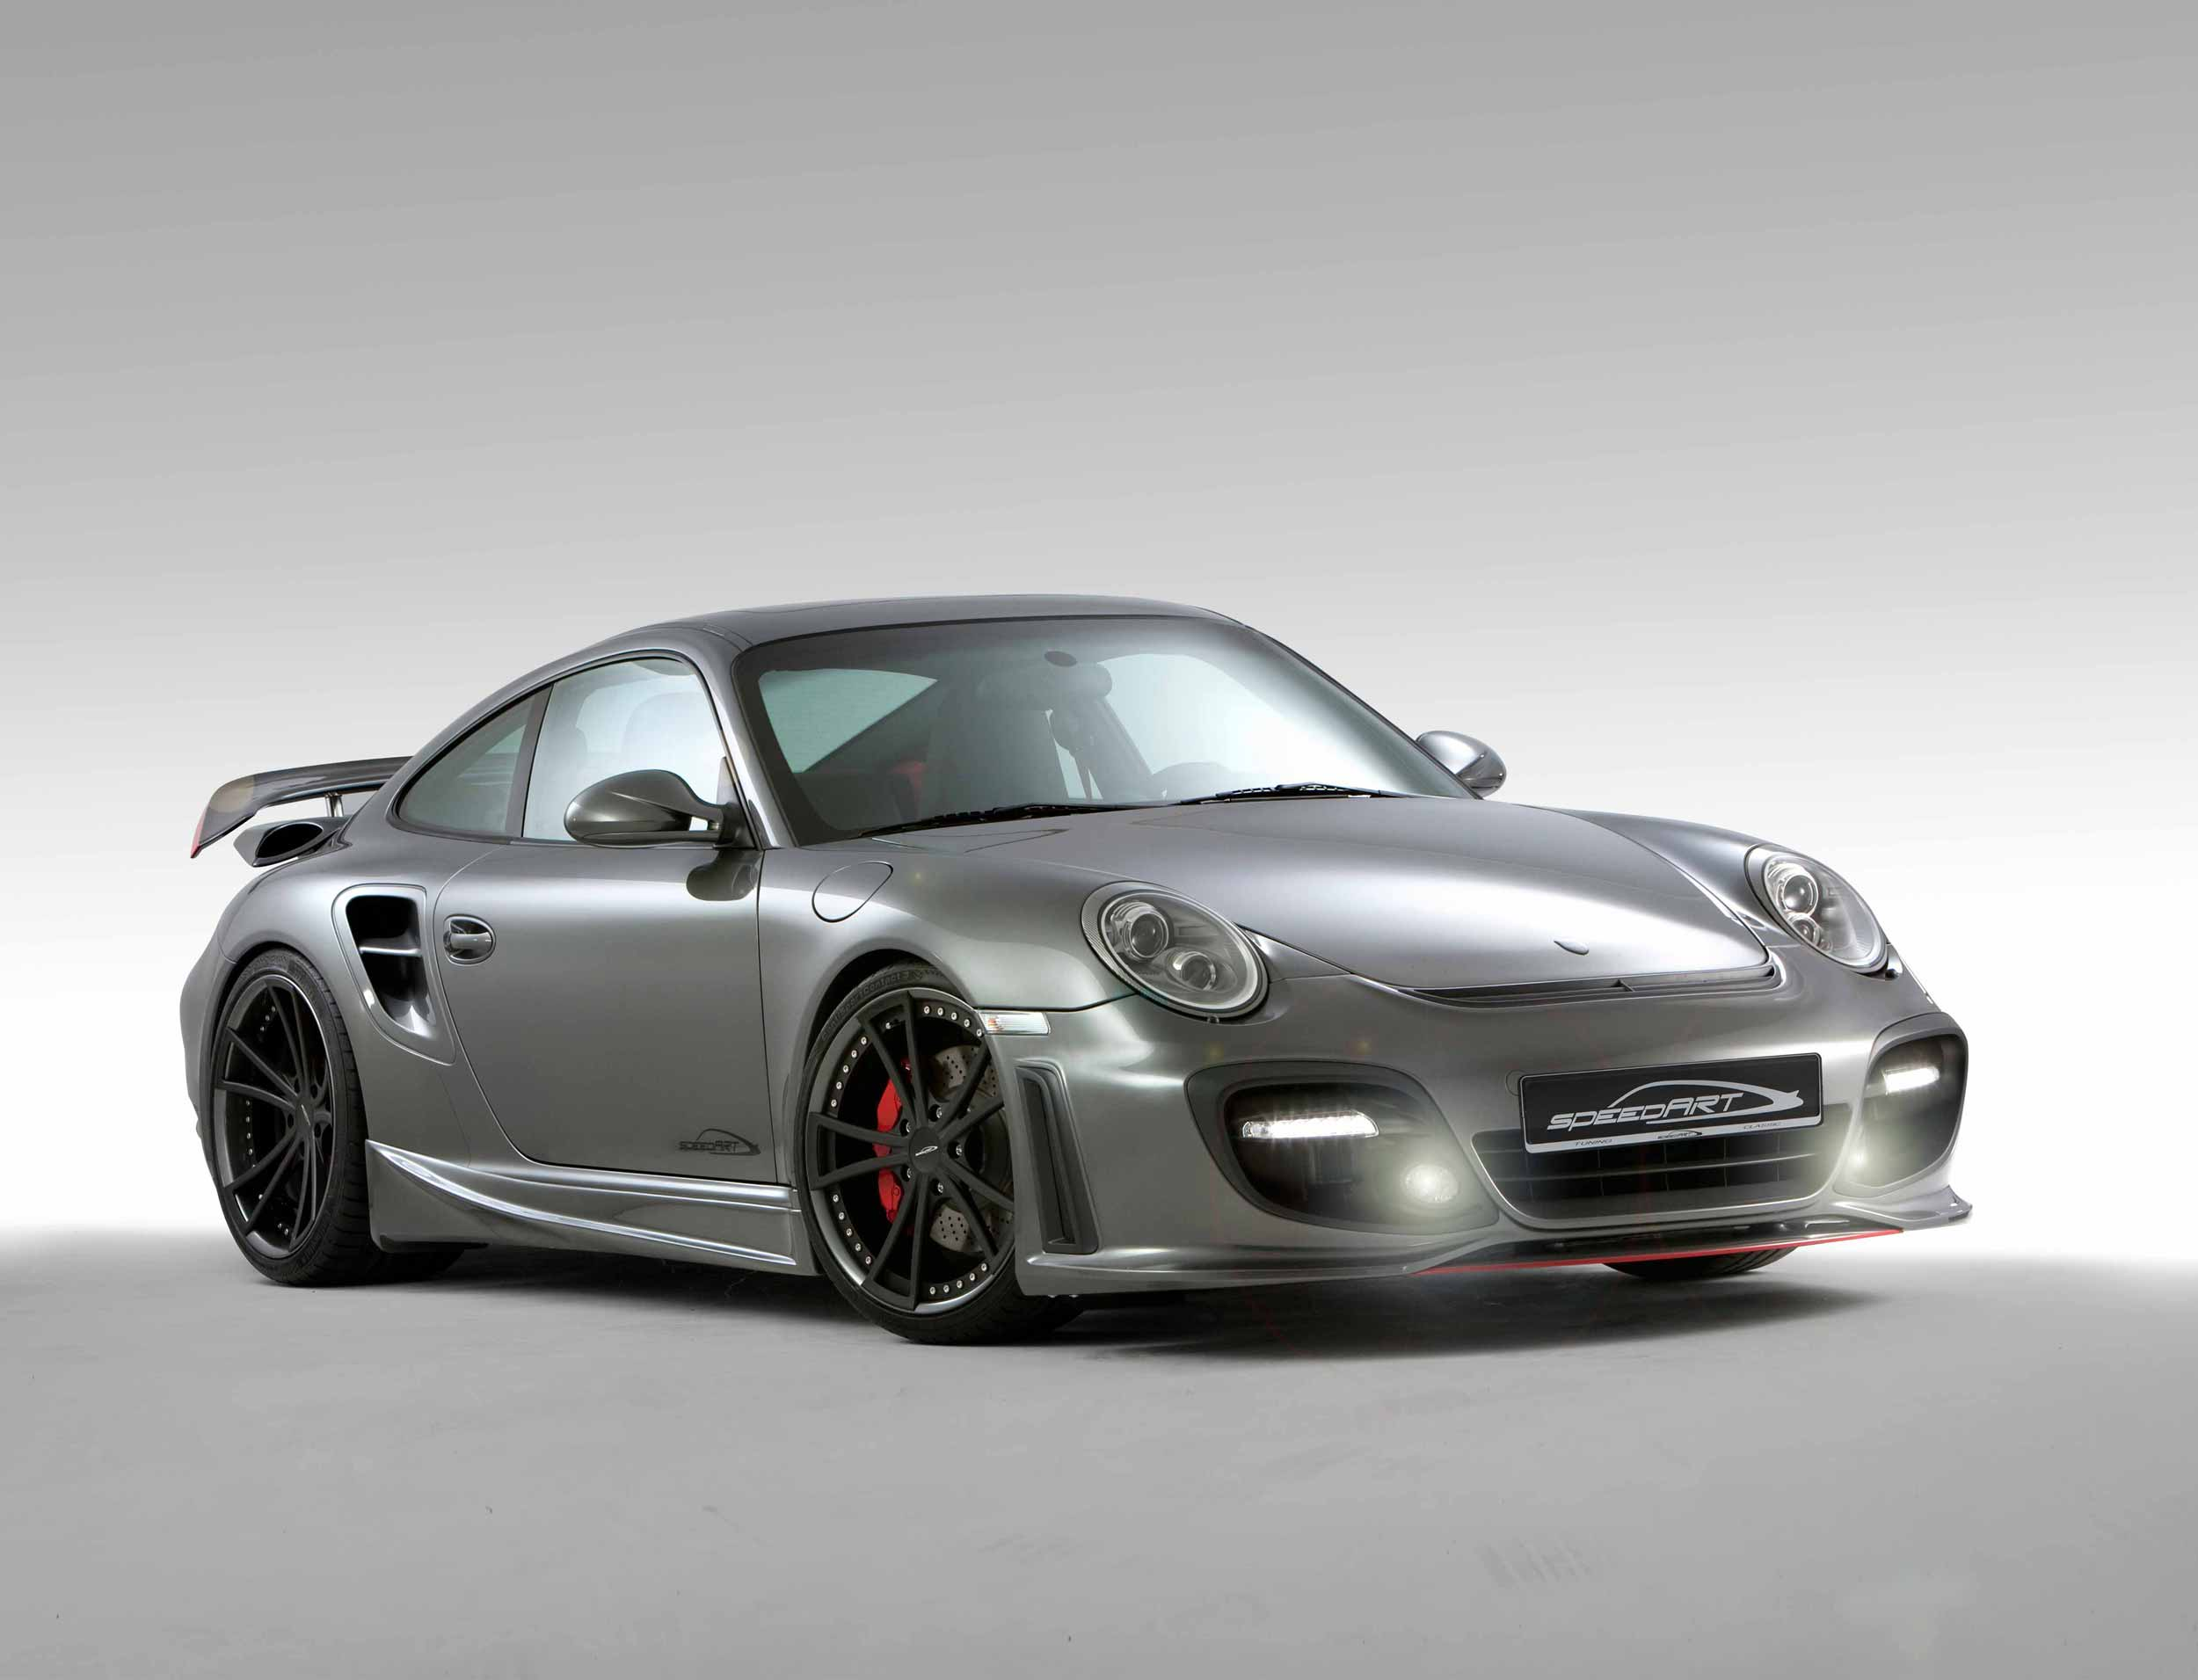 SpeedART BTR-II 650 EVO Porsche 997 Turbo Now With Enforced PDK-Gearbox